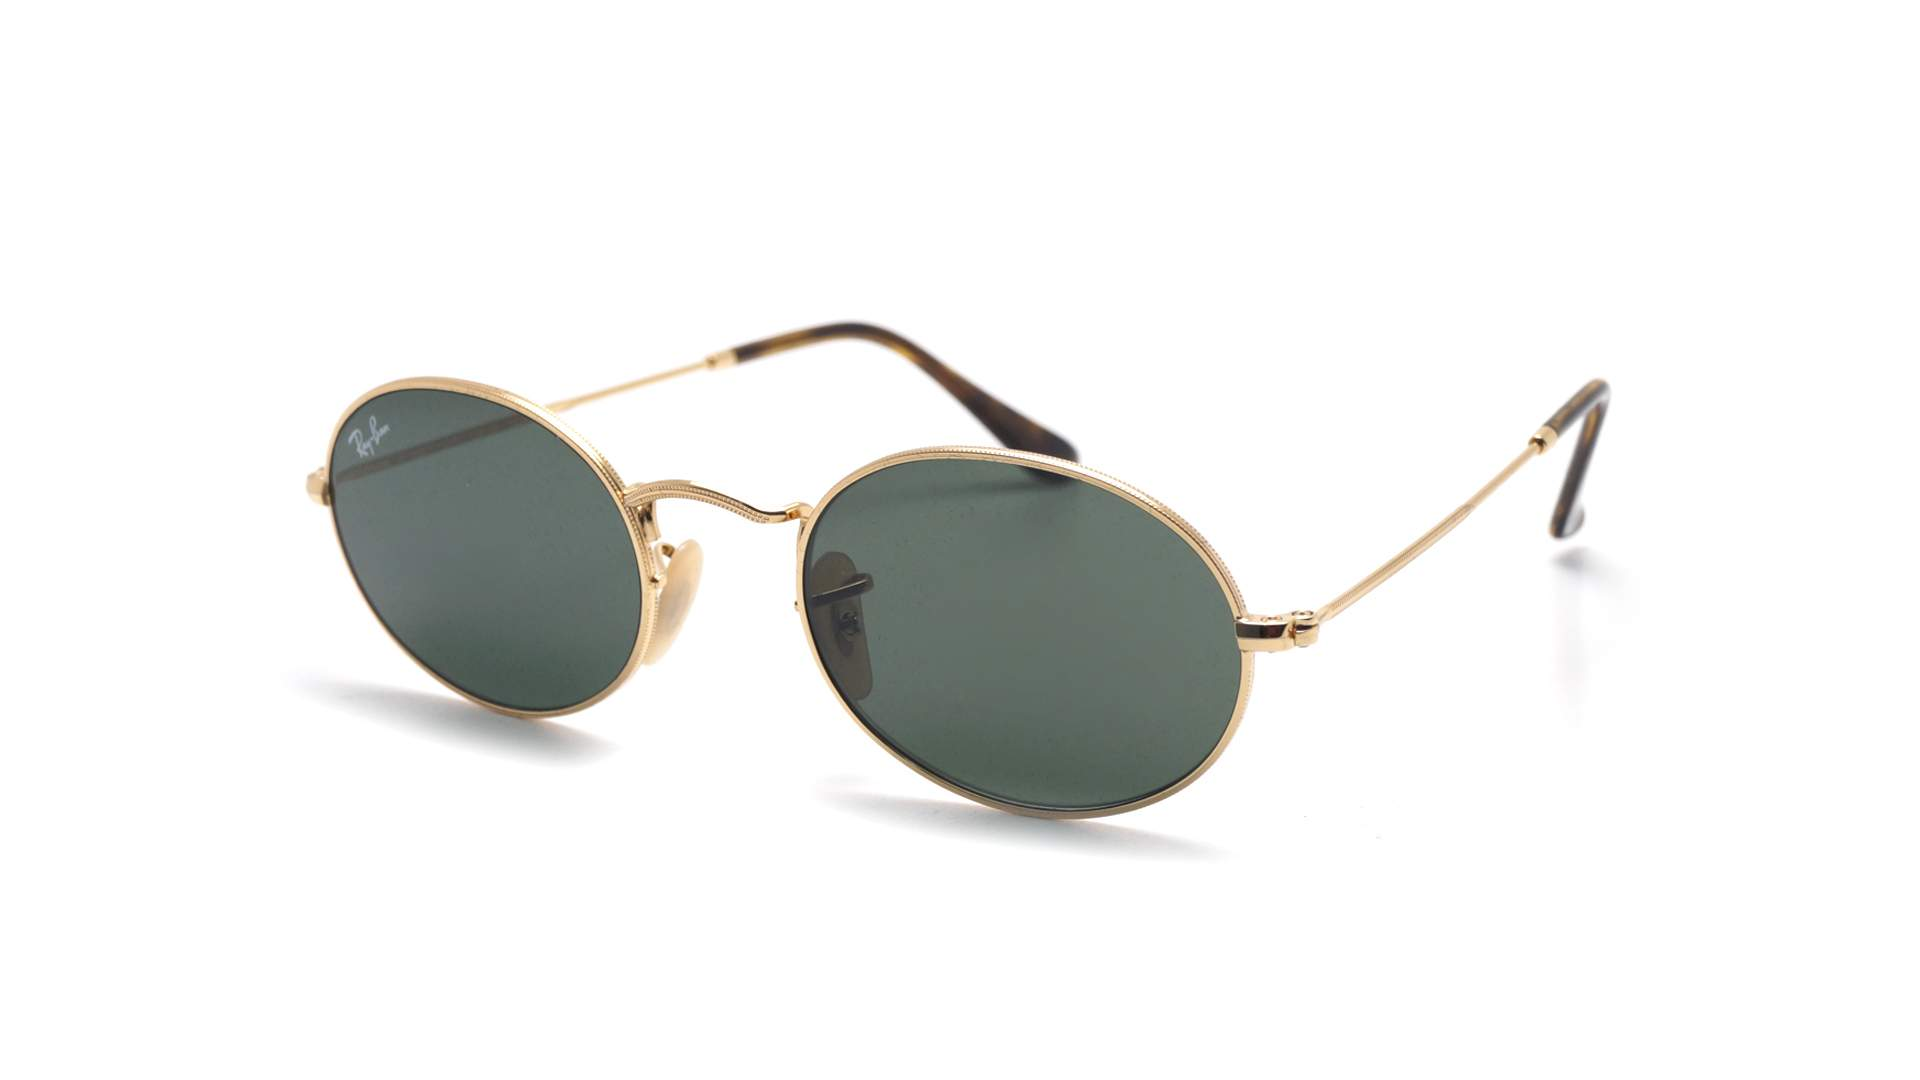 Ray Ban Oval Flat Lenses Gold G 15 RB3547N 001 51 21 Medium